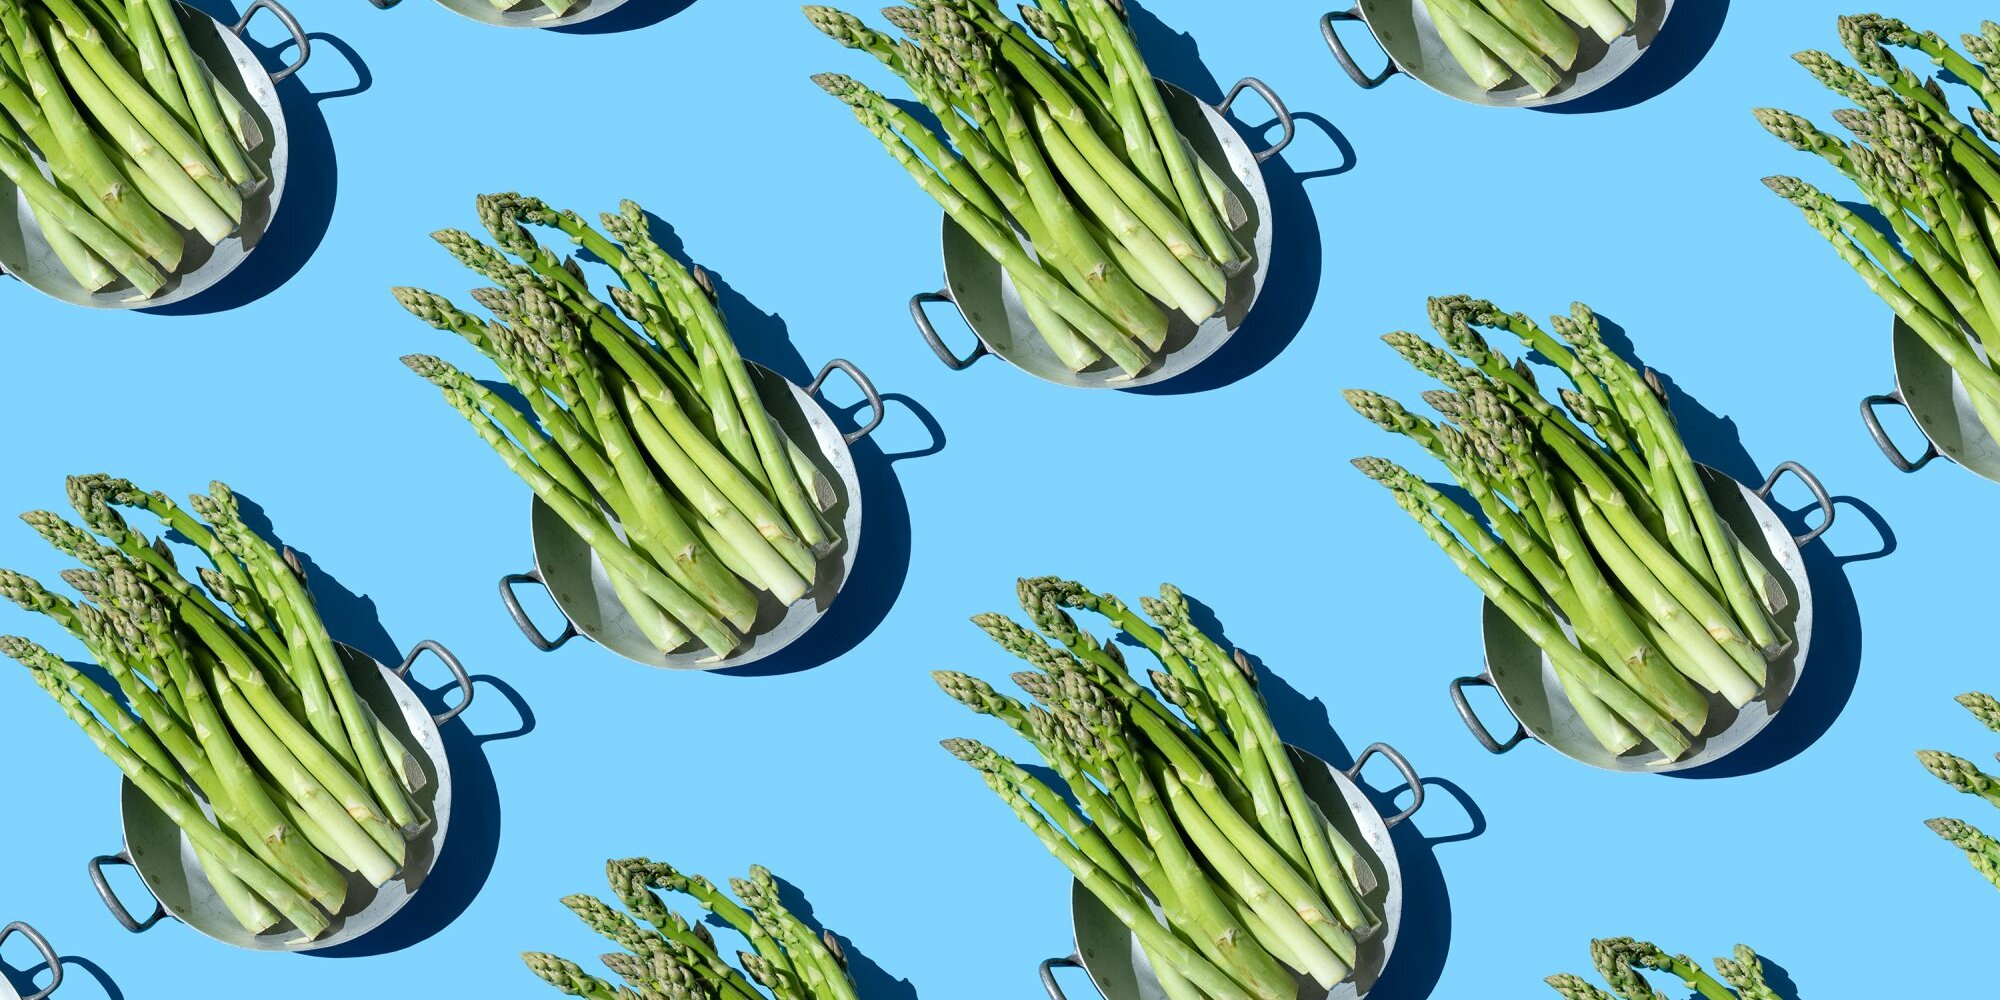 Crisp and Tasty Asparagus Is Your Secret Weapon for Healthy Digestion—Here's Why RDs Love It